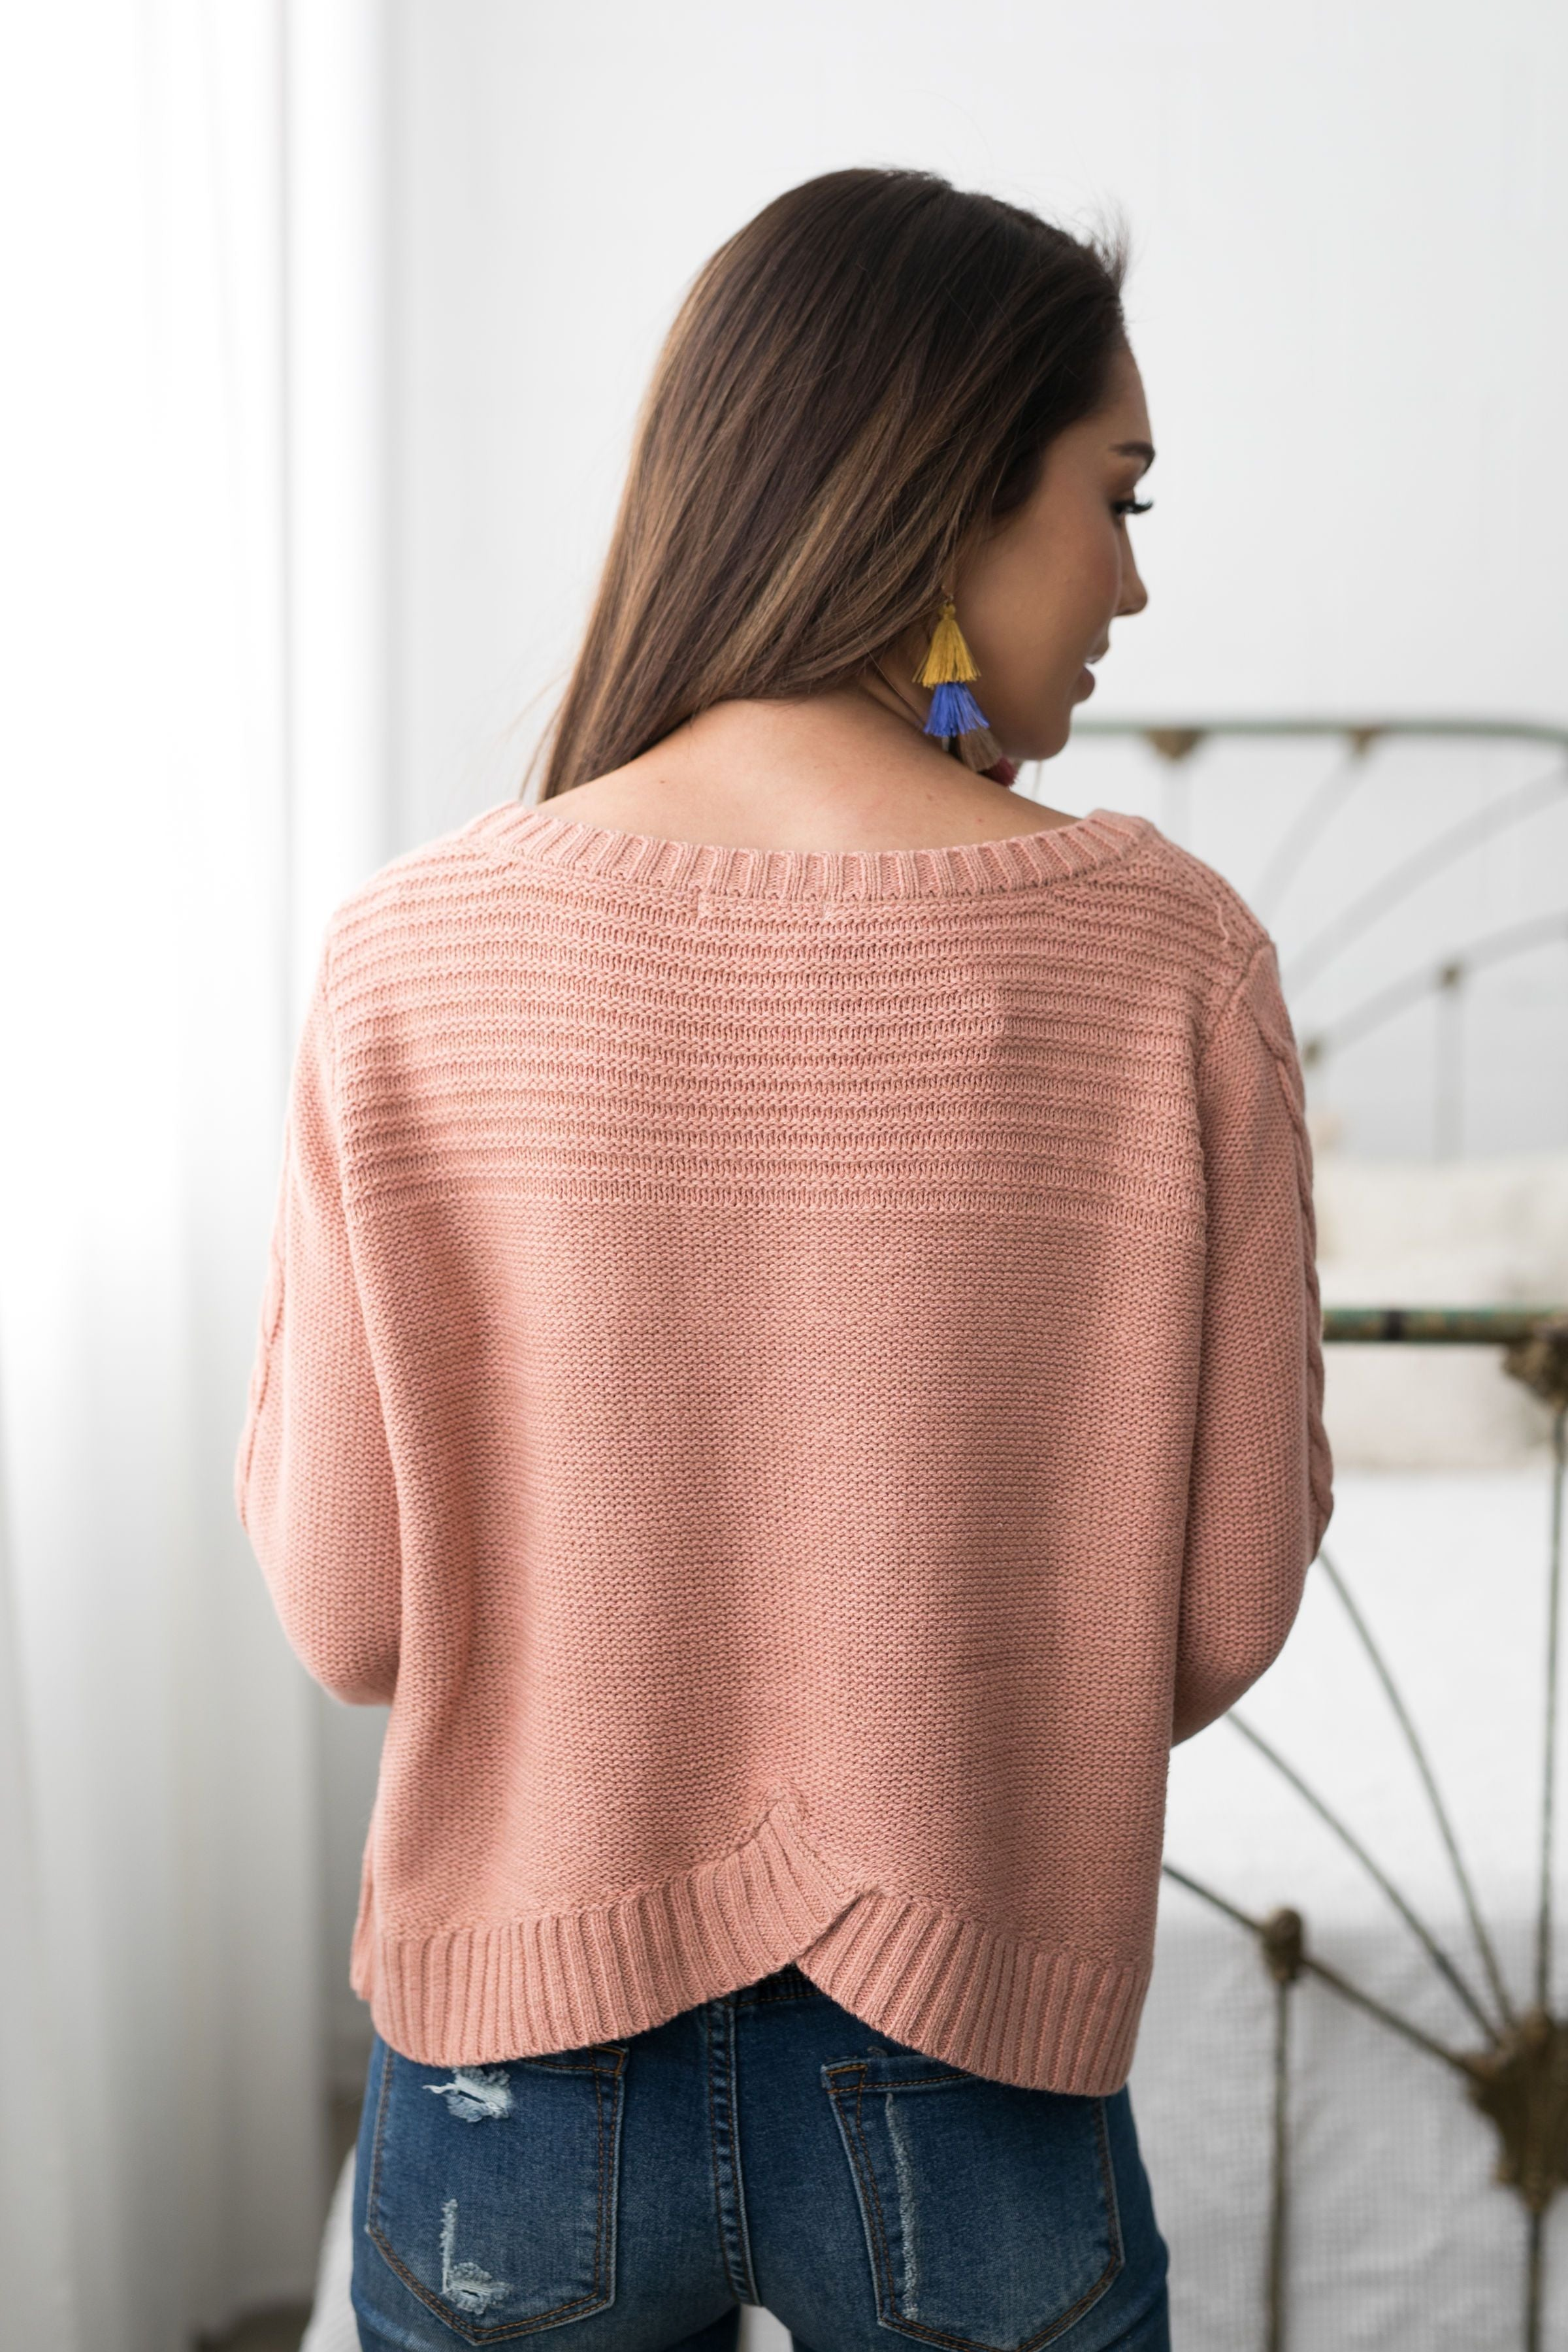 Cropped Cable Knit Sweater In Ginger - ALL SALES FINAL